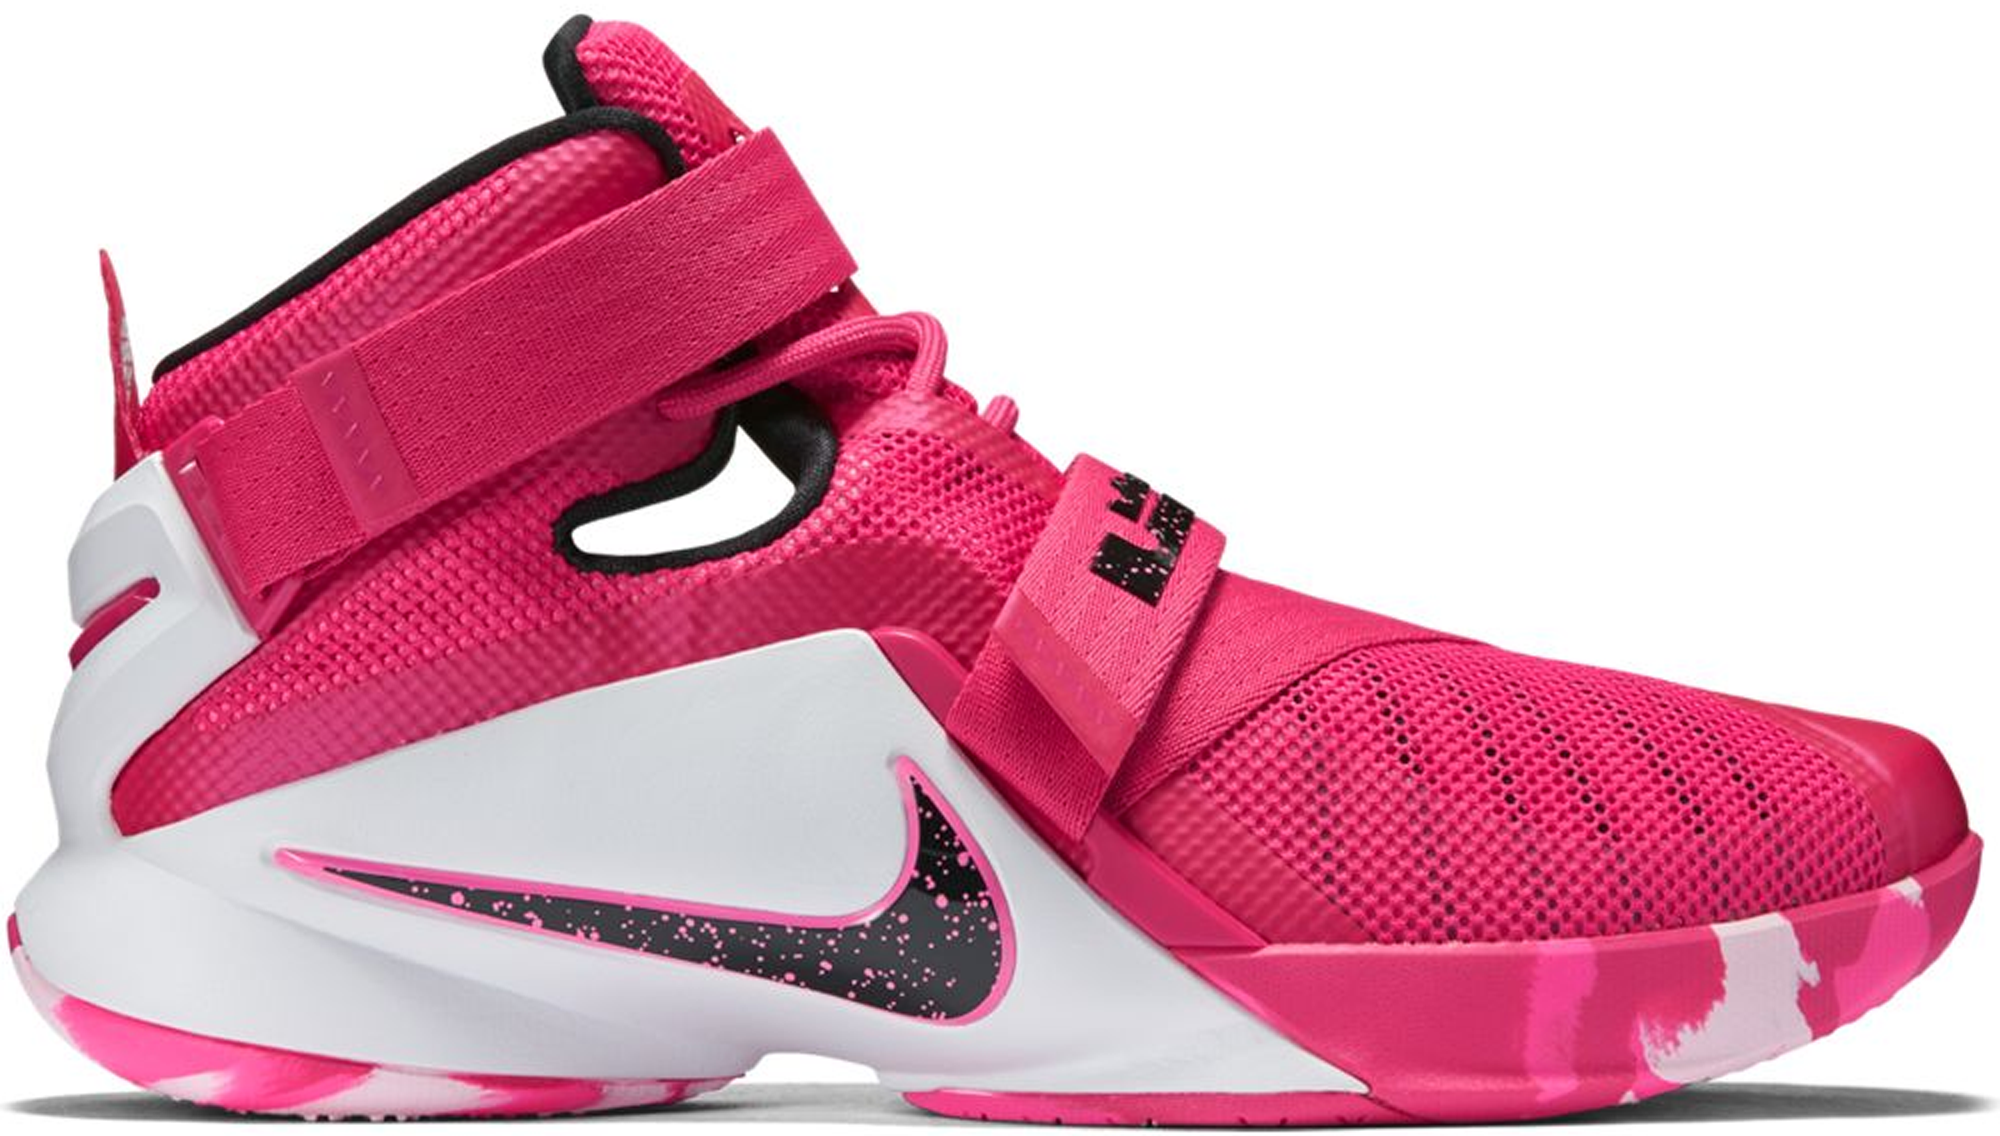 ddee1258ed3 ... closeout nike lebron zoom soldier 9 think pink c3219 dd059